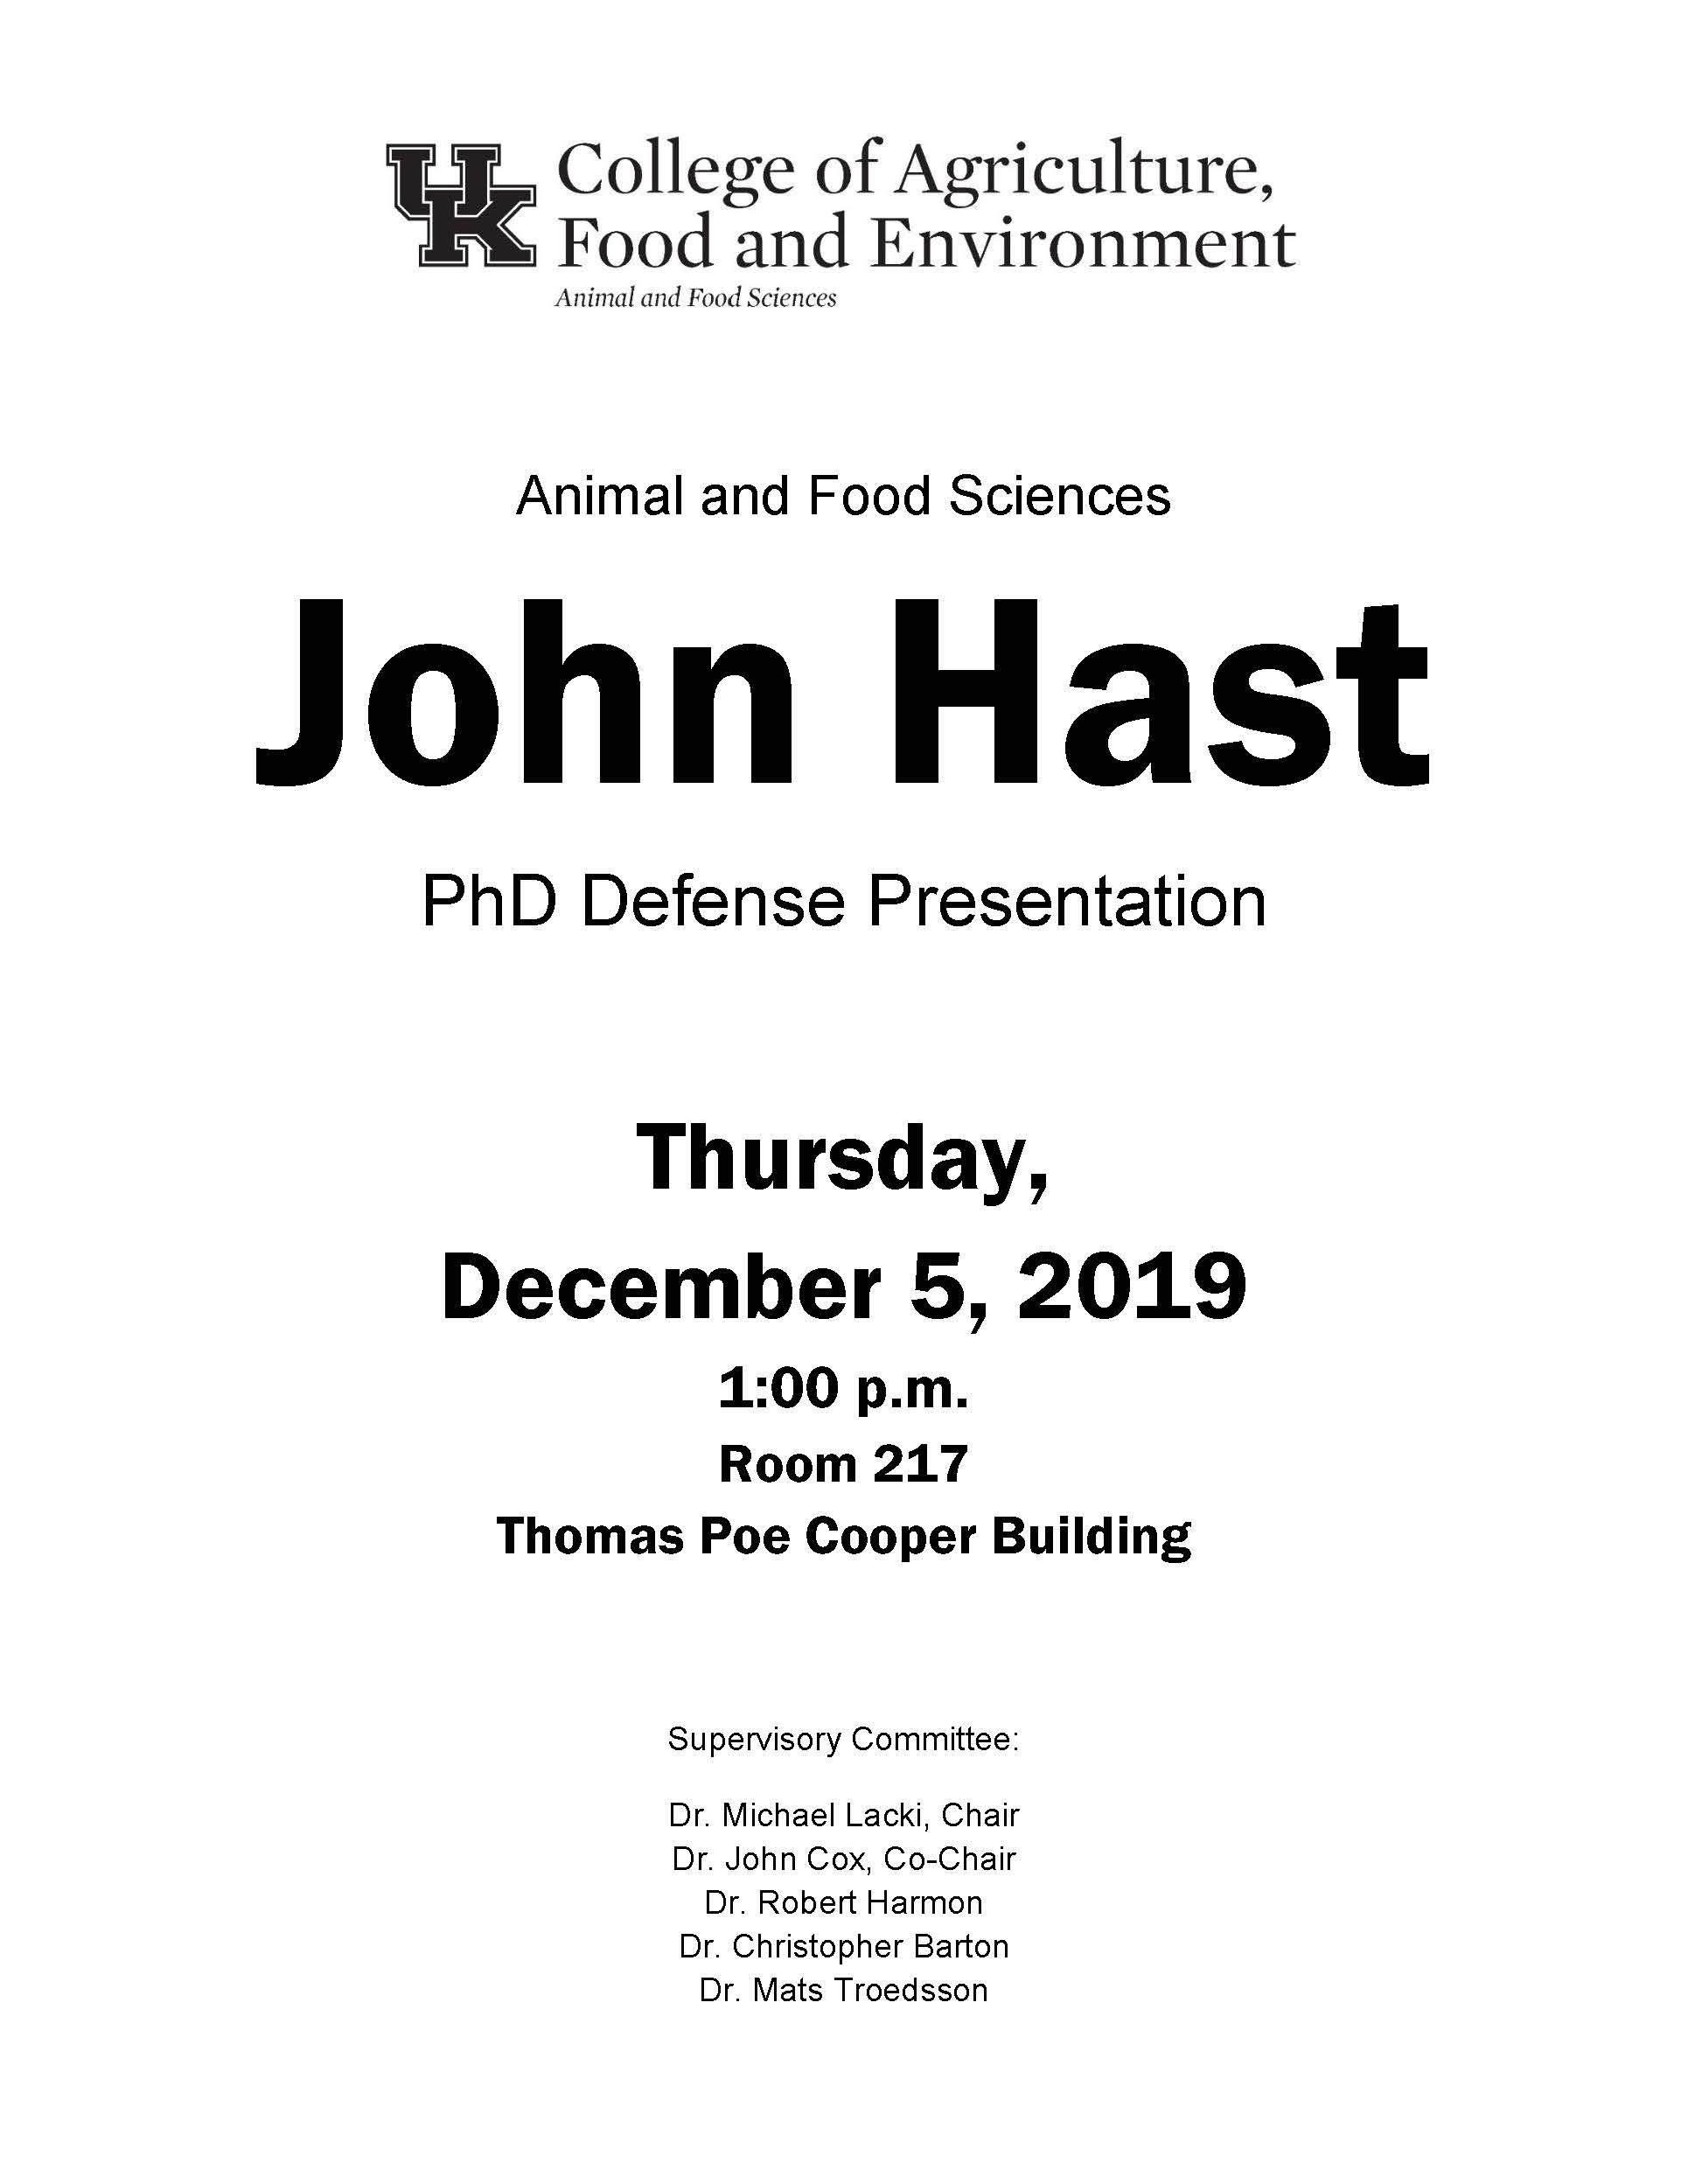 Dec. 5 - John Hast PhD Presentation